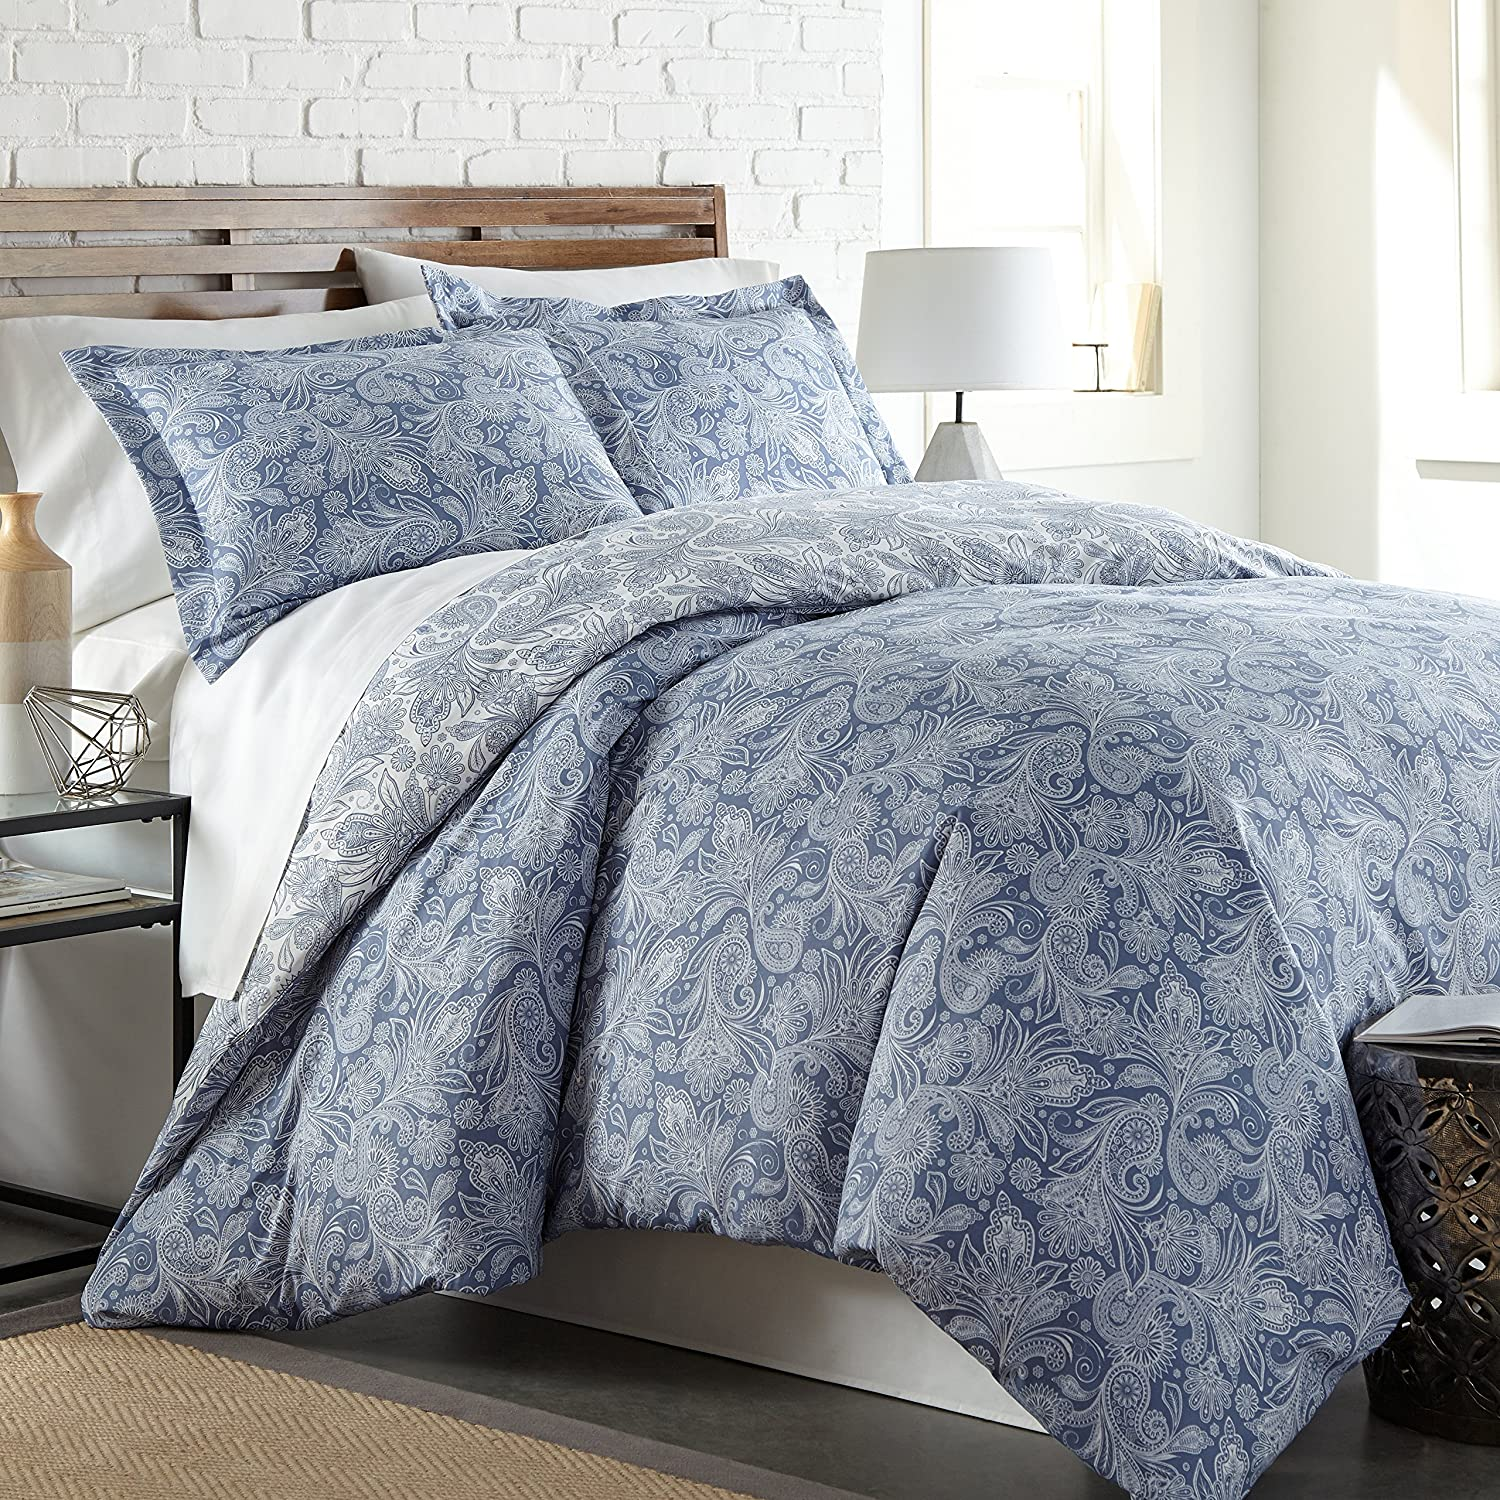 Southshore Fine Linens - Perfect Paisley Collection - Boho Style Comforter Sets, 3 Piece Set, Full/Queen, Blue